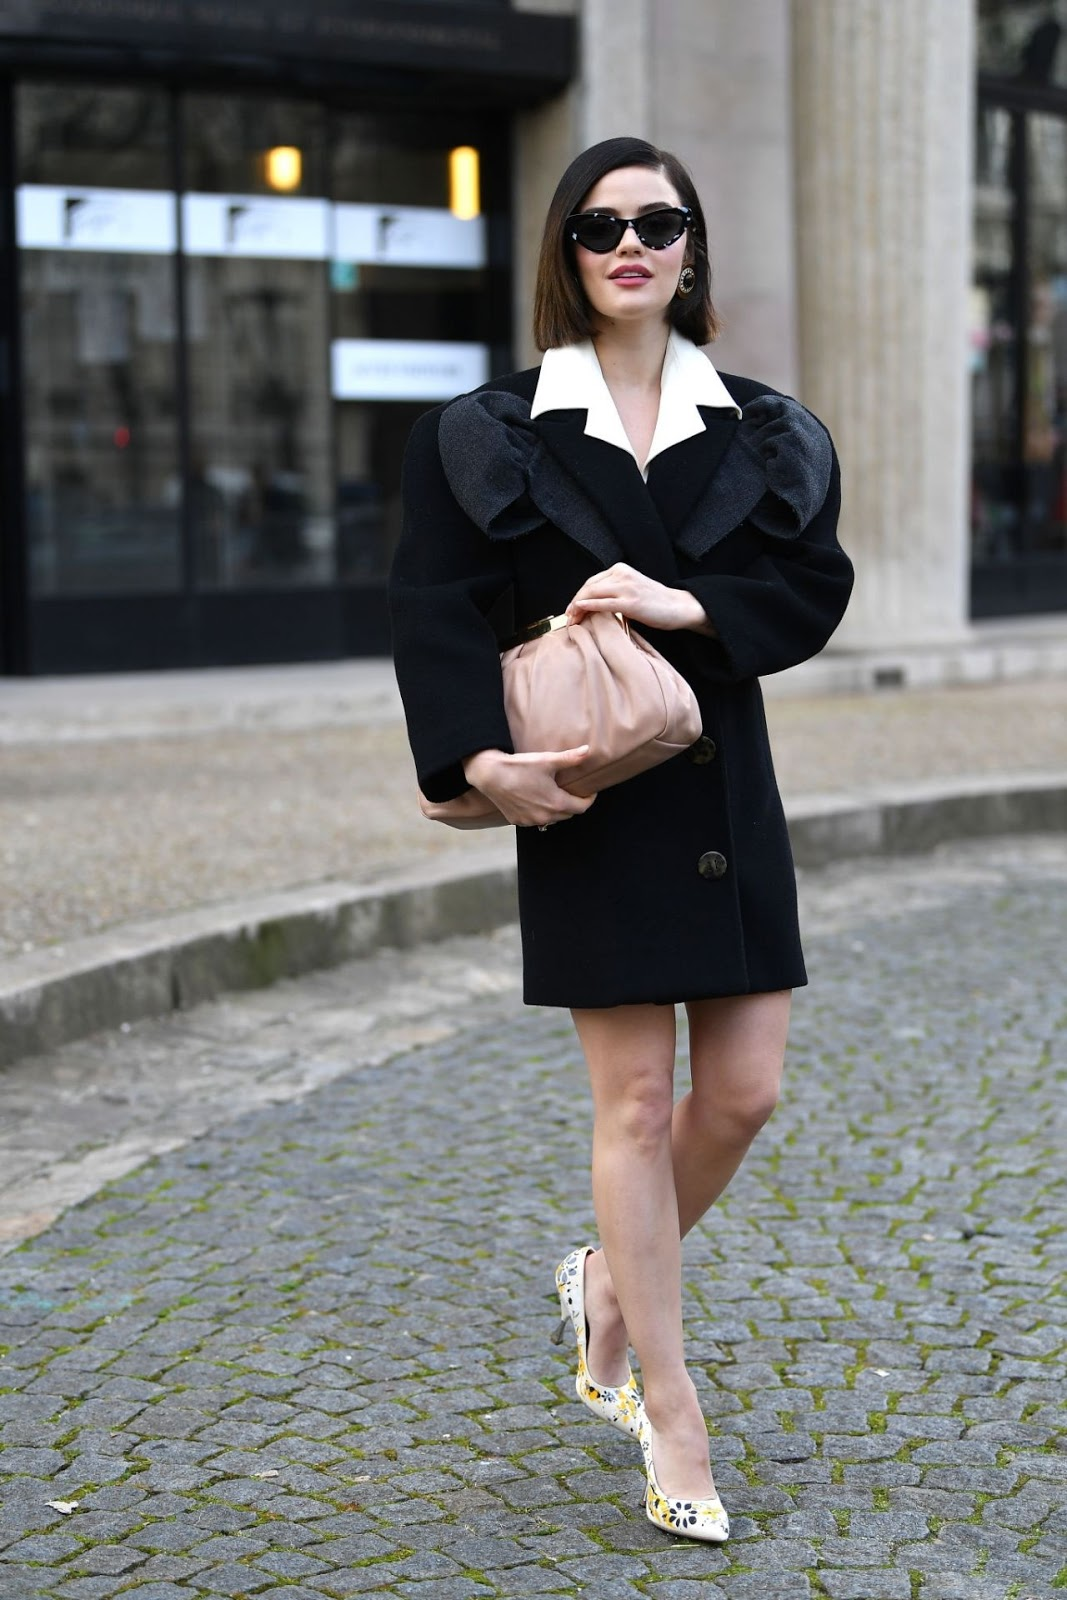 Lucy Hale flaunts legs in blazer dress at the Miu Miu Fall/Winter 2020 Fashion Show in Paris